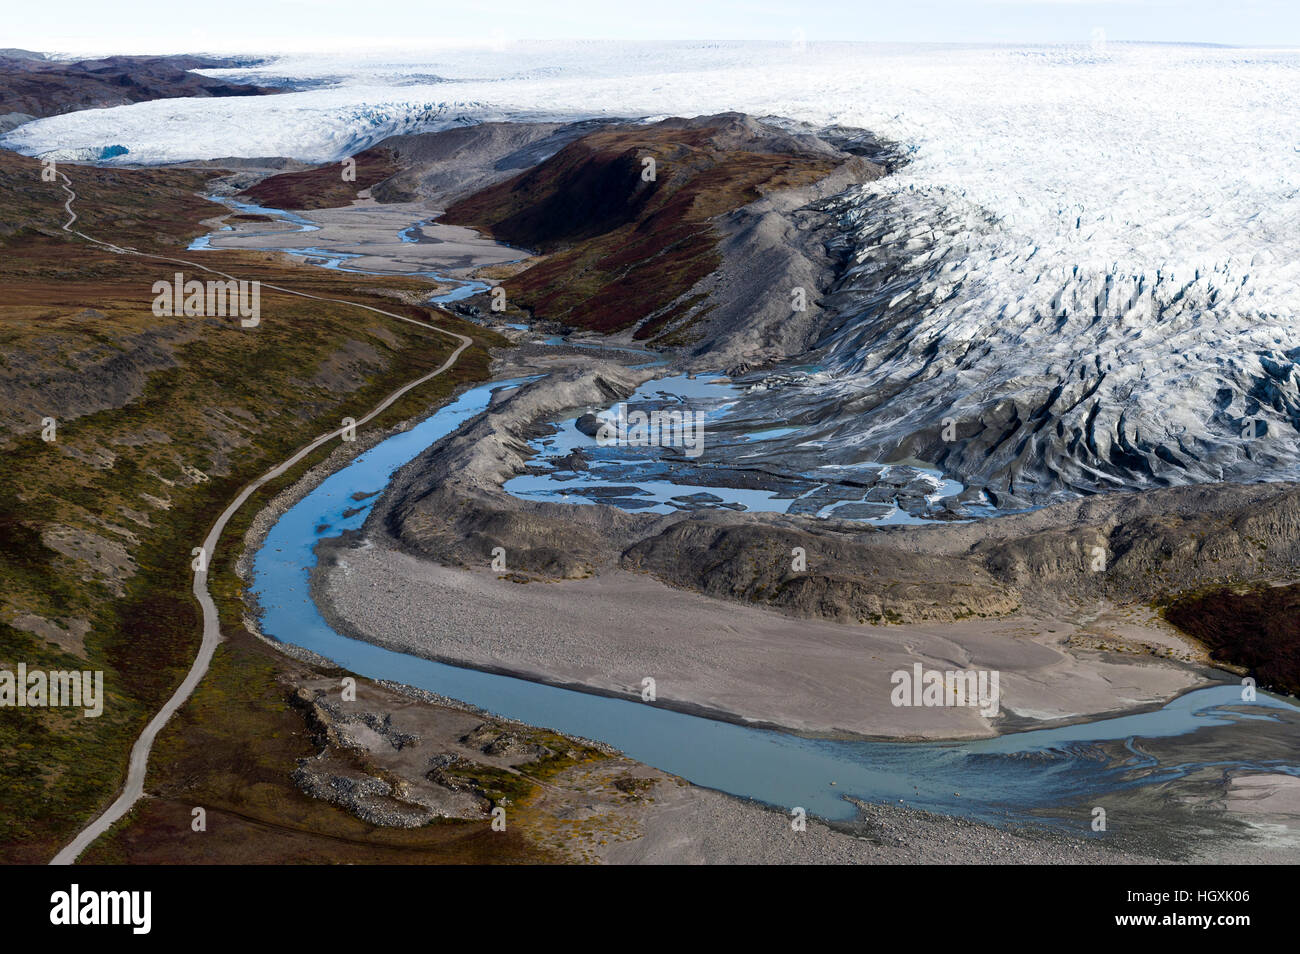 A river skirts a pile of rock, sediment and silt debris deposited by the leading edge of a glacier. - Stock Image